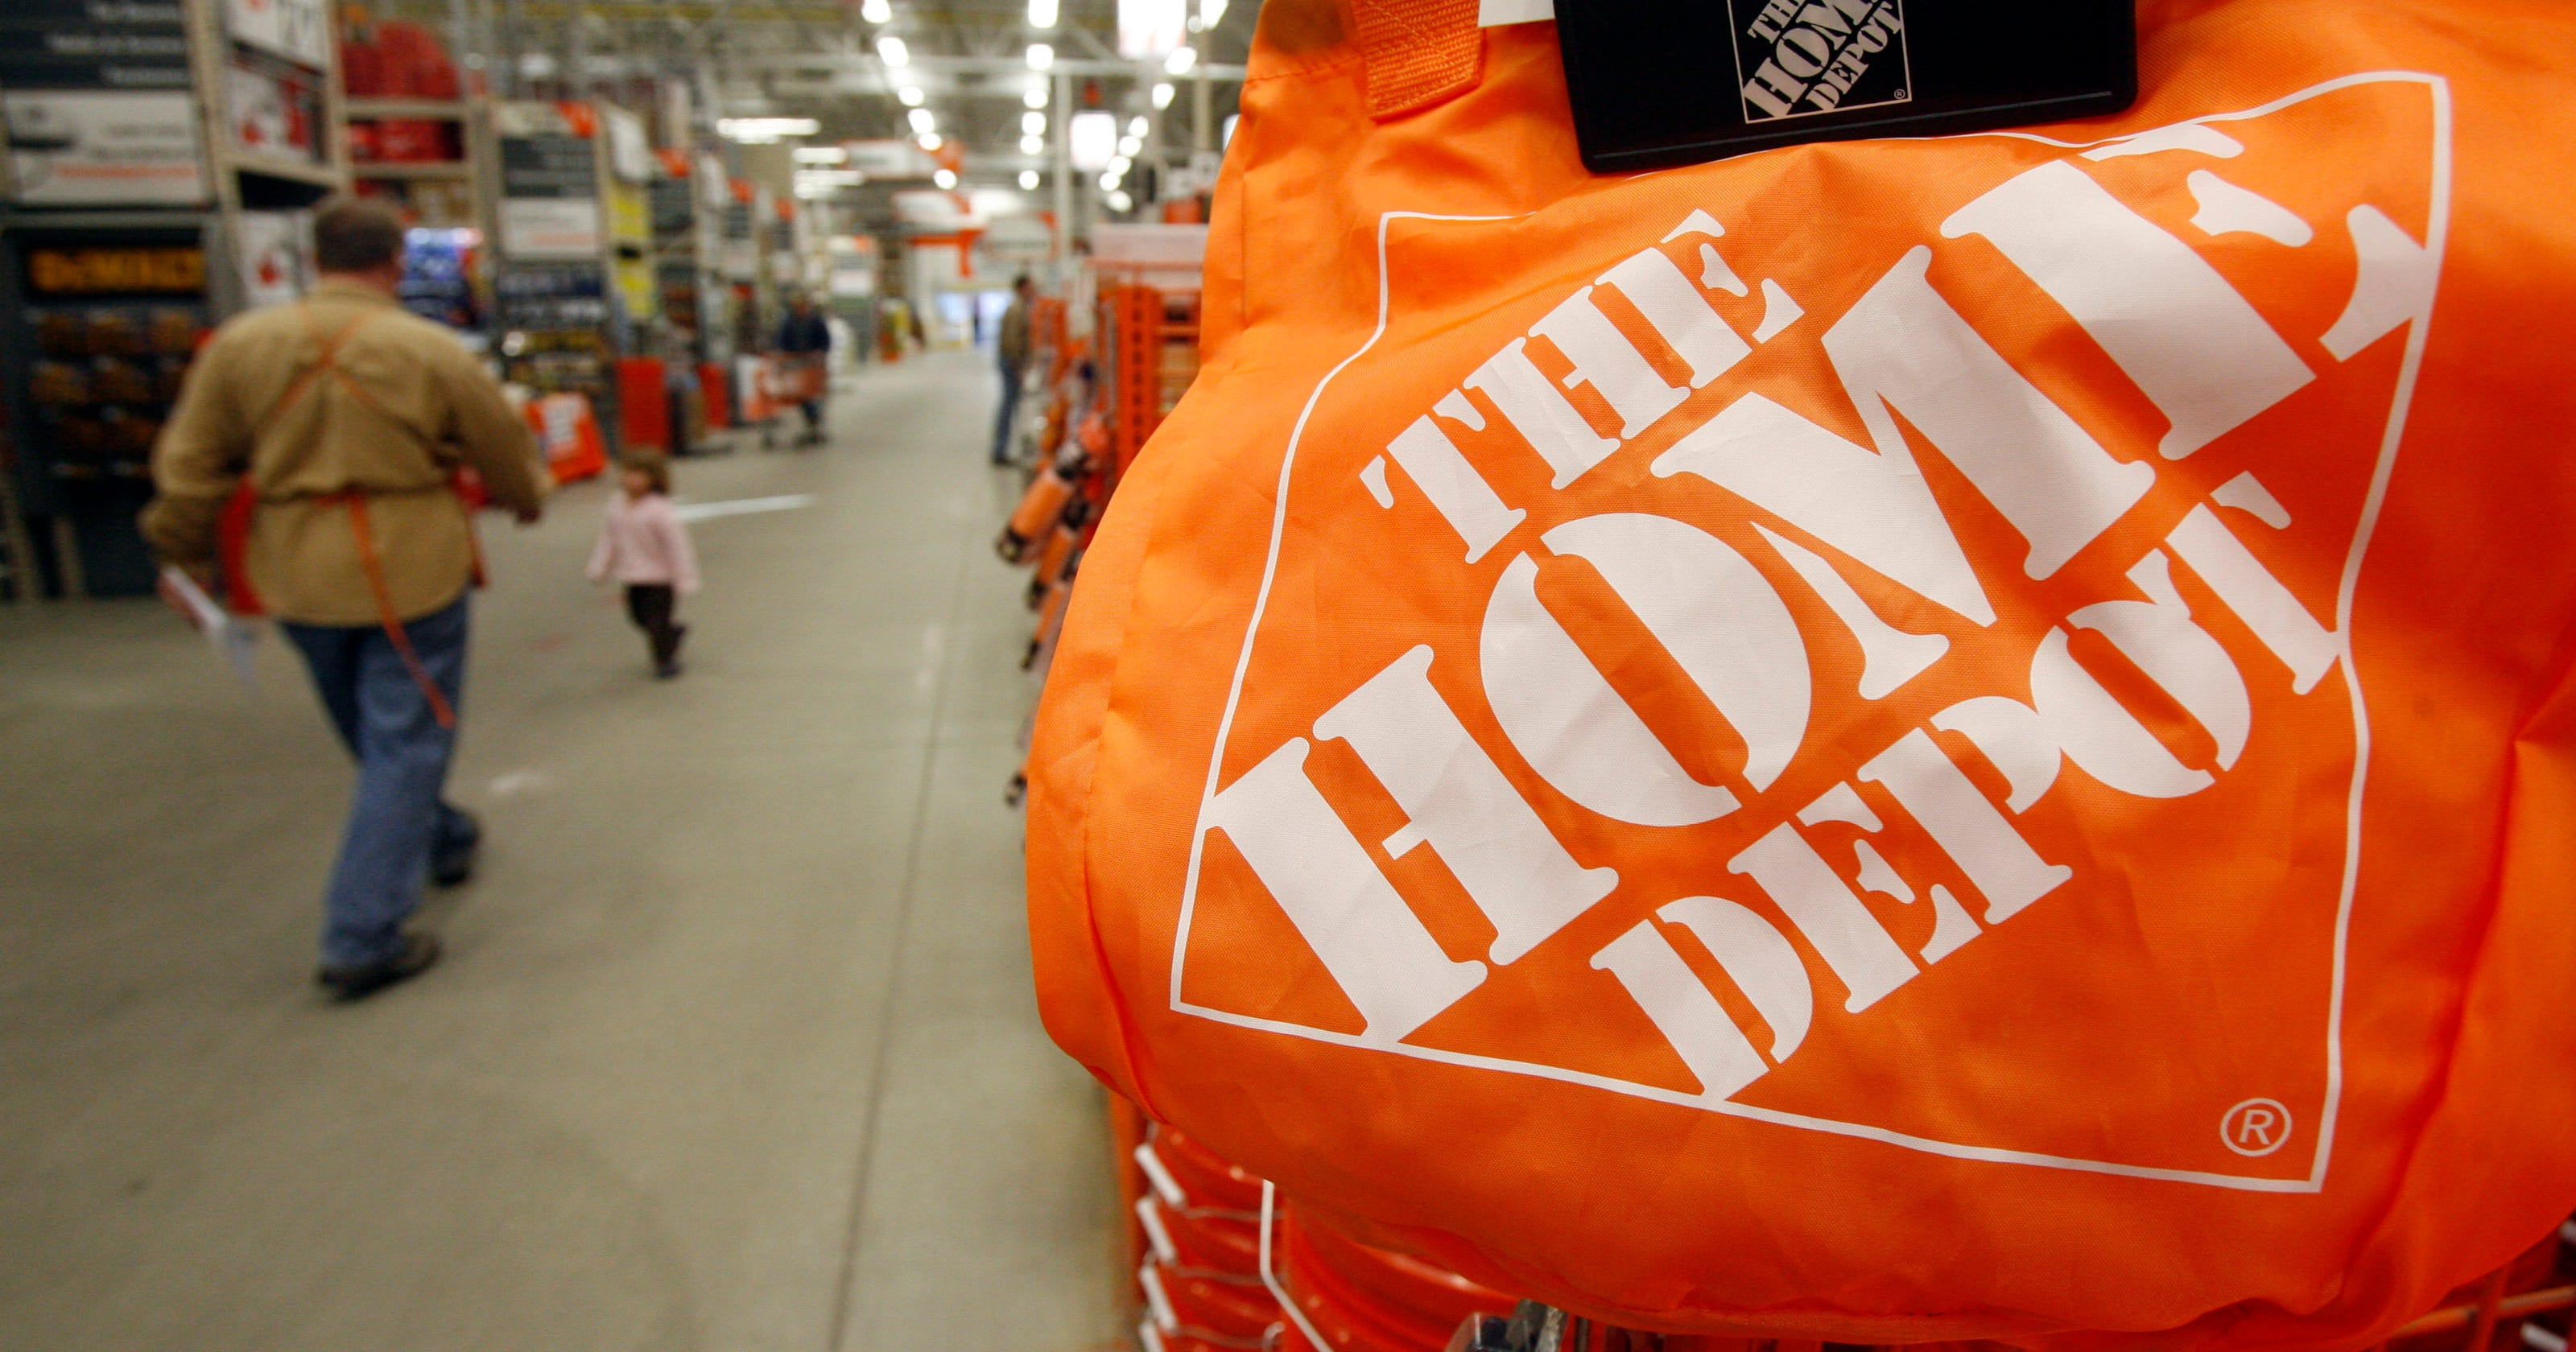 Home Depot hackers used vendor log-on to steal data, e-mails